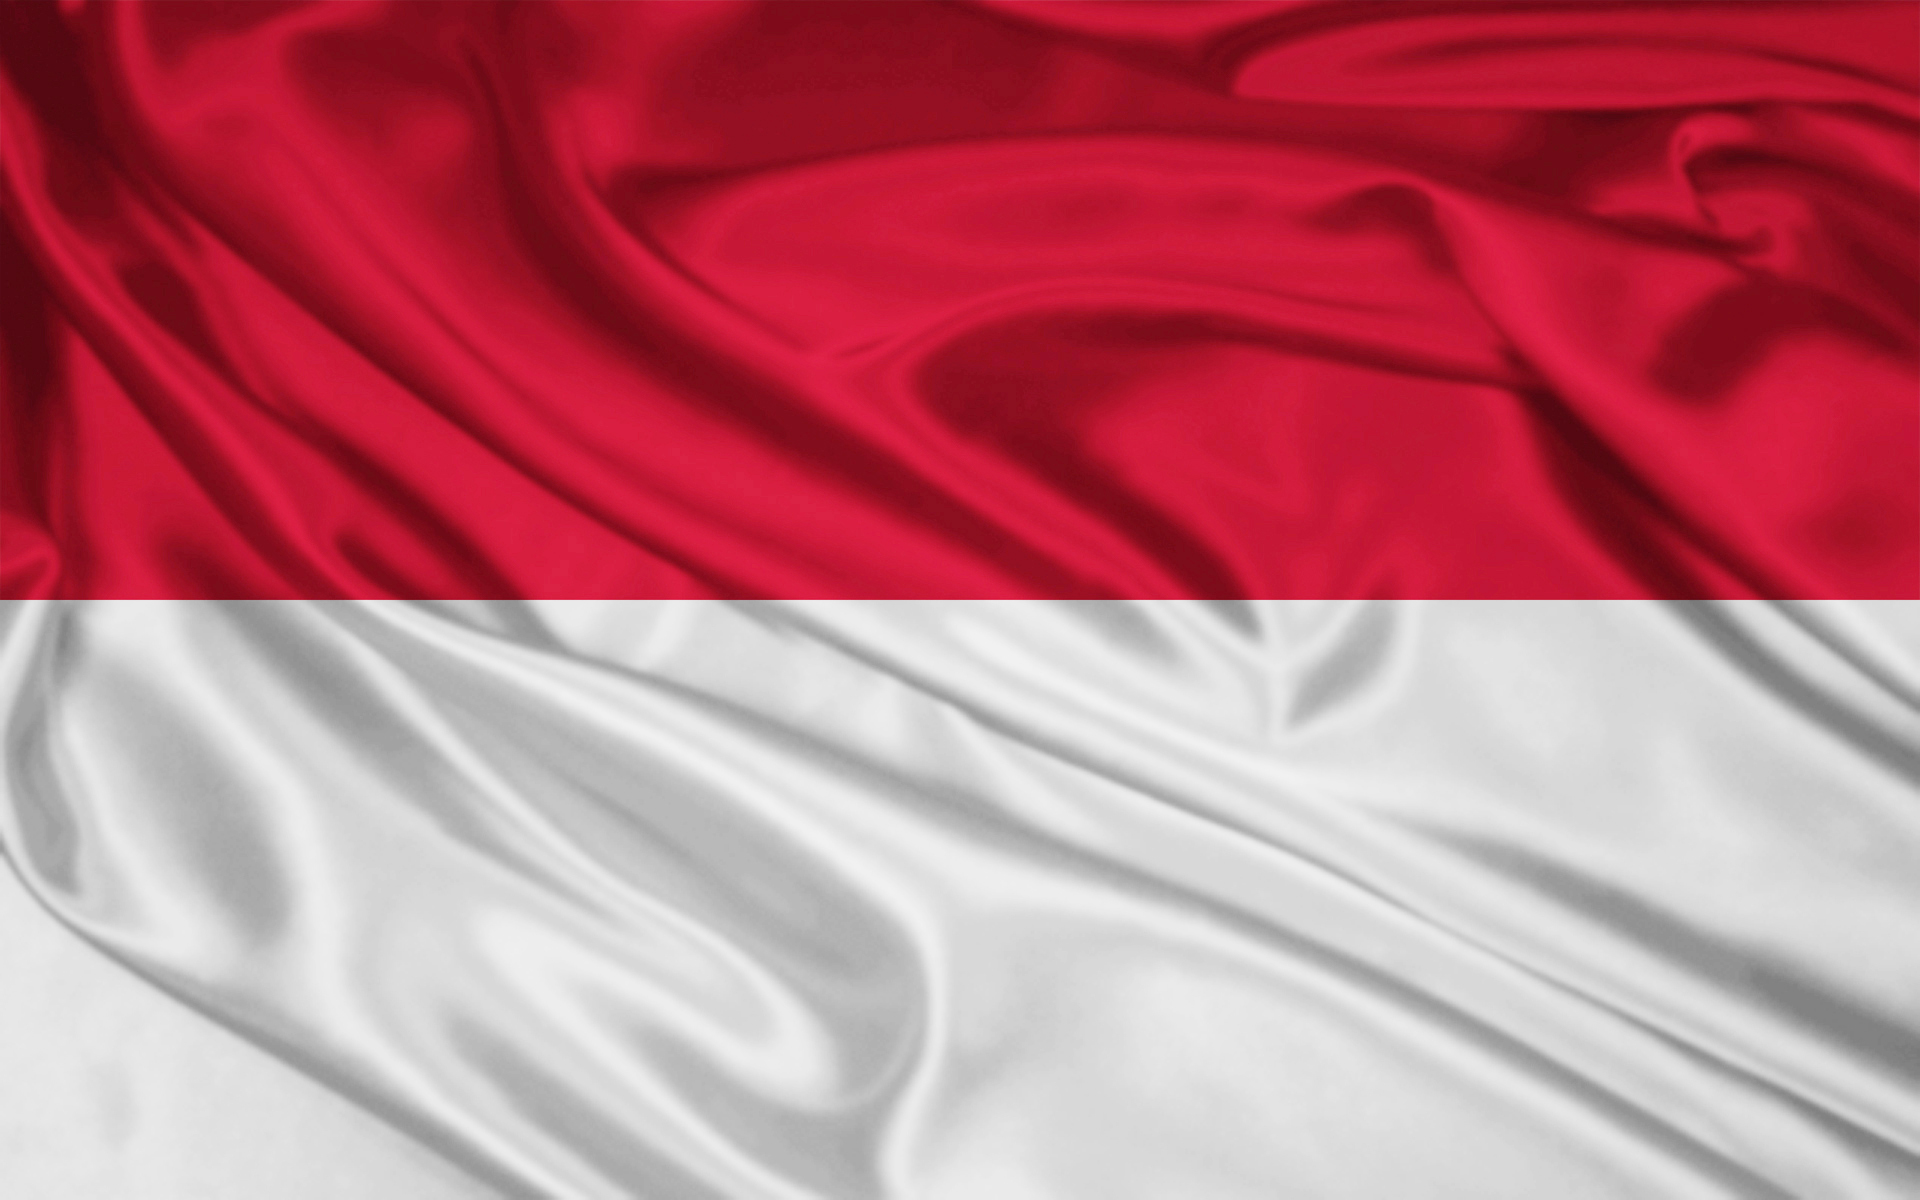 What is the difference between the flag of Indonesia and Monaco